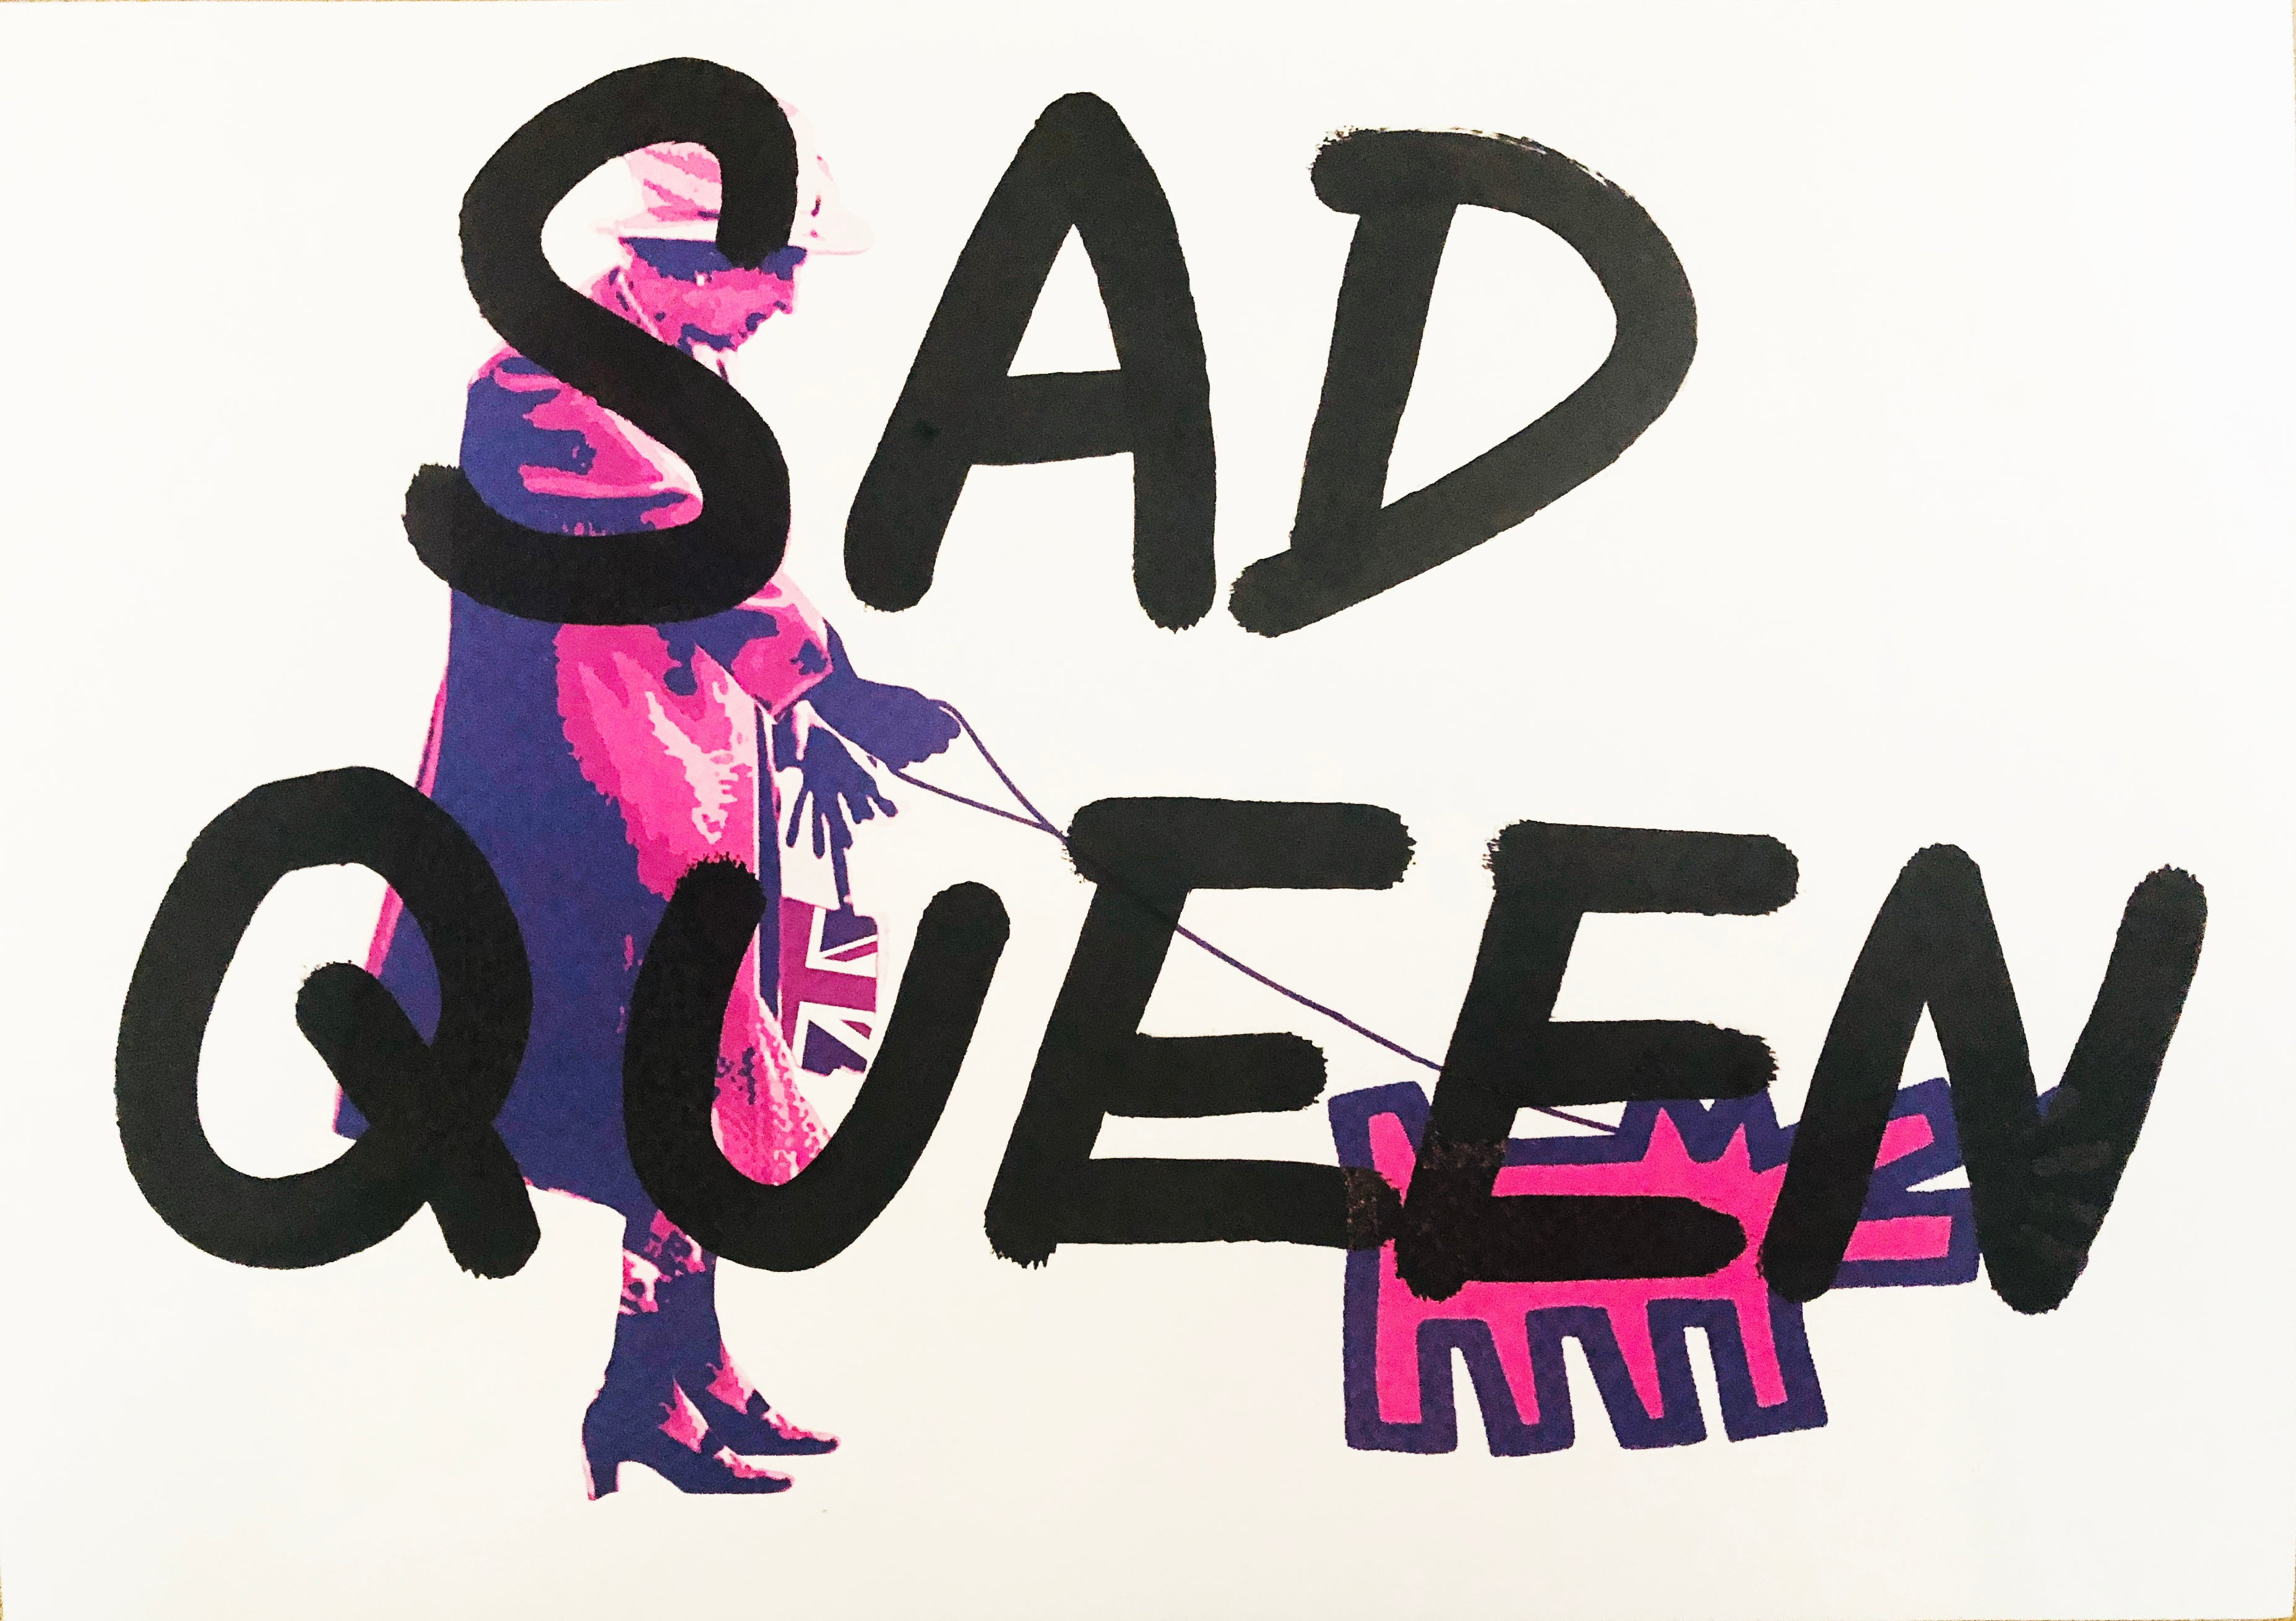 "Queen Dog ""SAD QUEEN"" (8"" x 12"") (Edition of 1)"